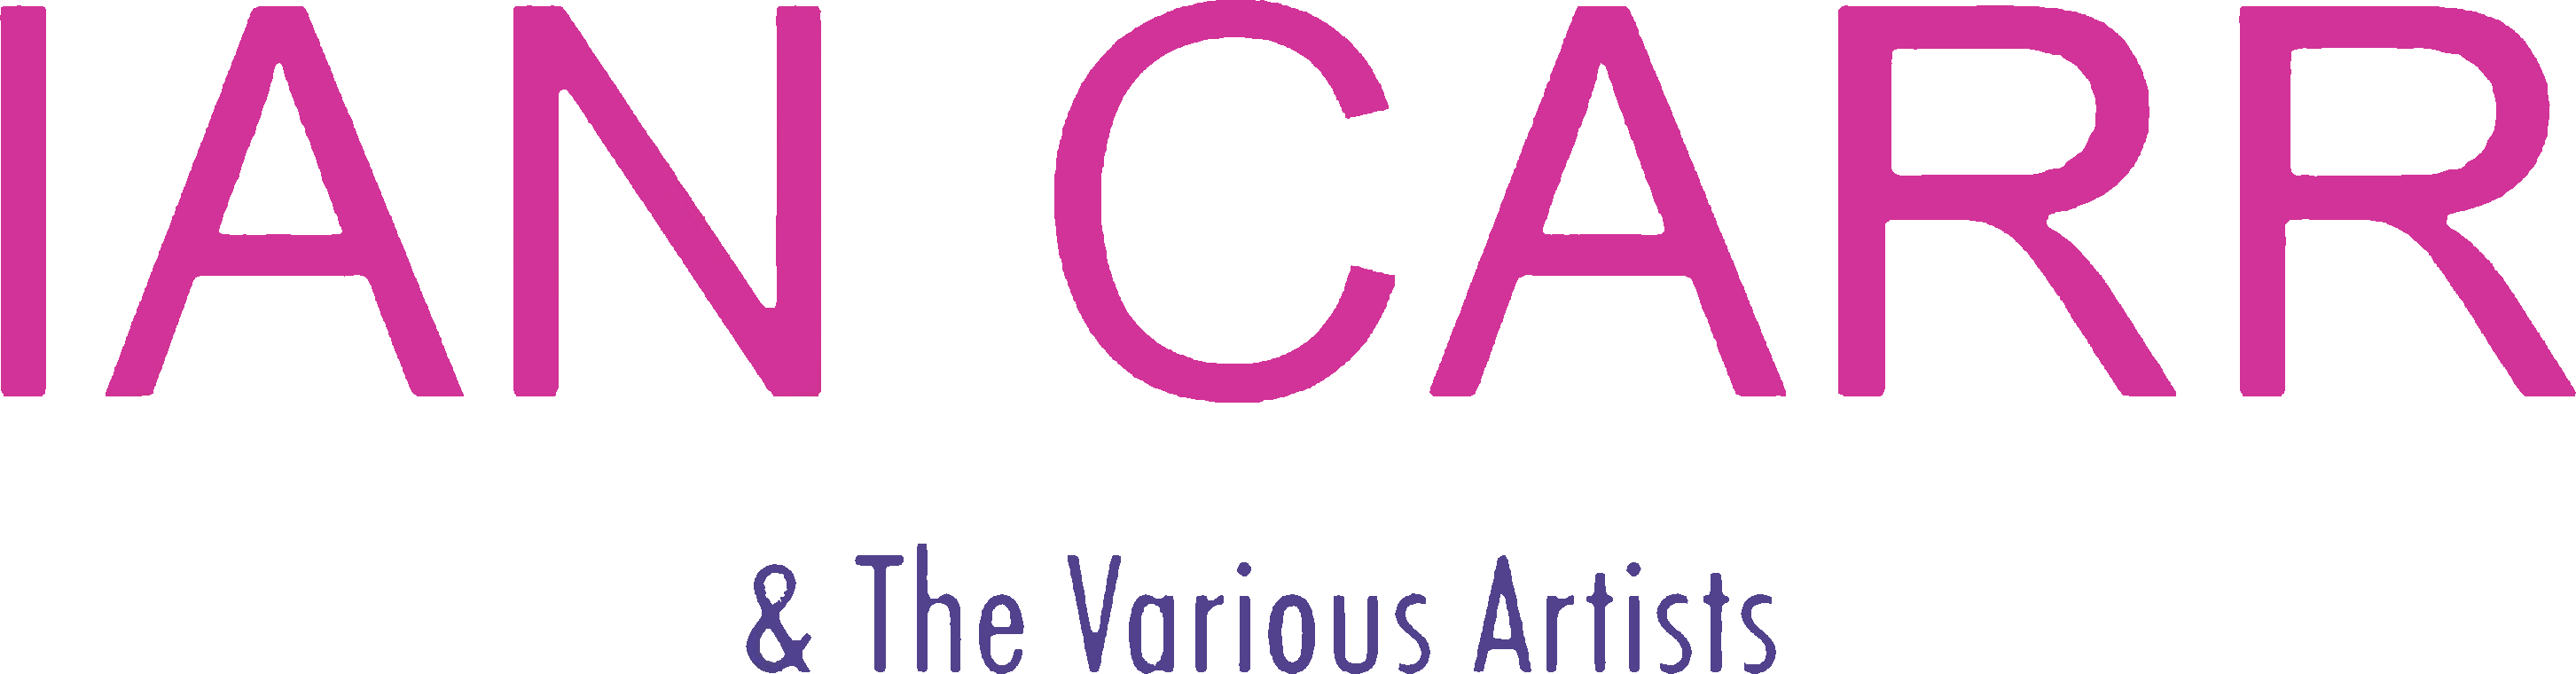 Ian Carr and the various artists logo